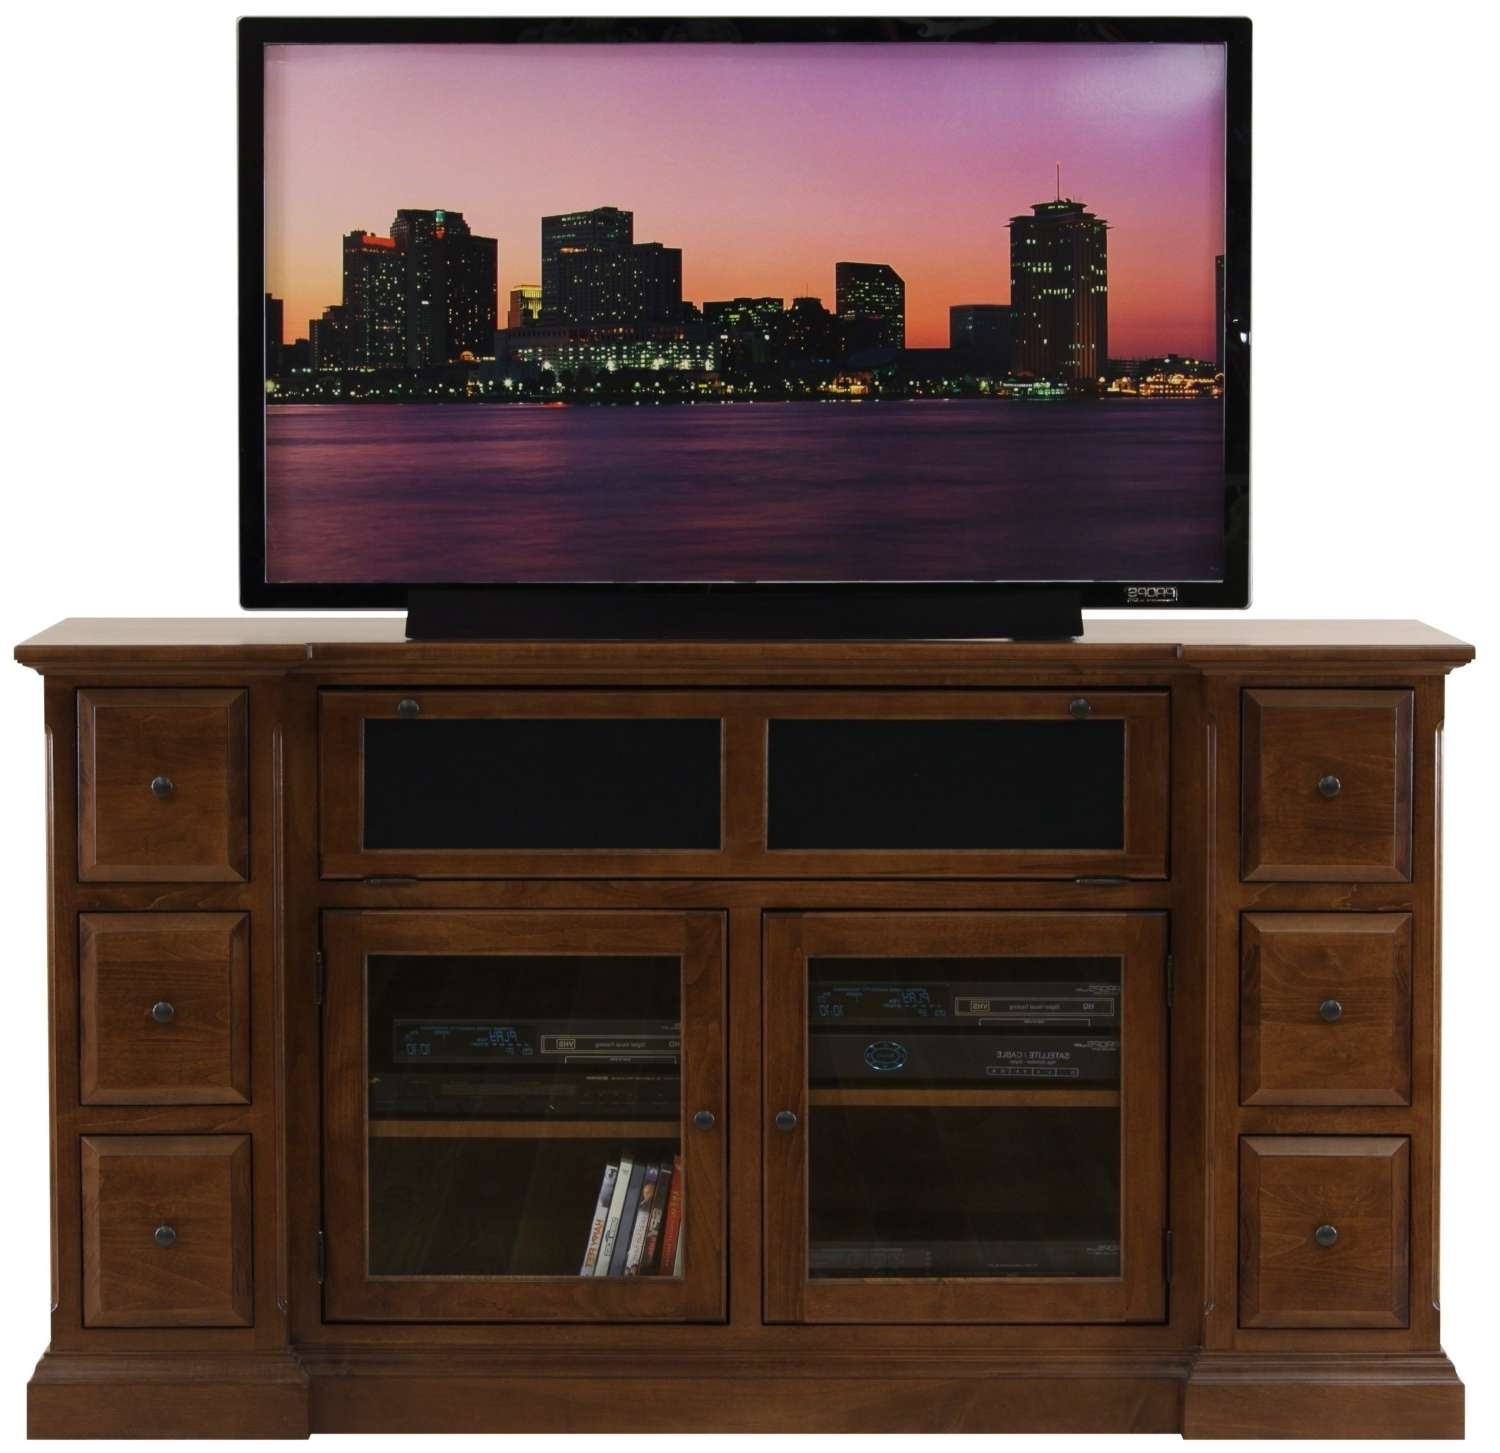 Tv Stand And Cabinet 47 With Tv Stand And Cabinet | Whshini For Cabinet Tv Stands (View 11 of 15)